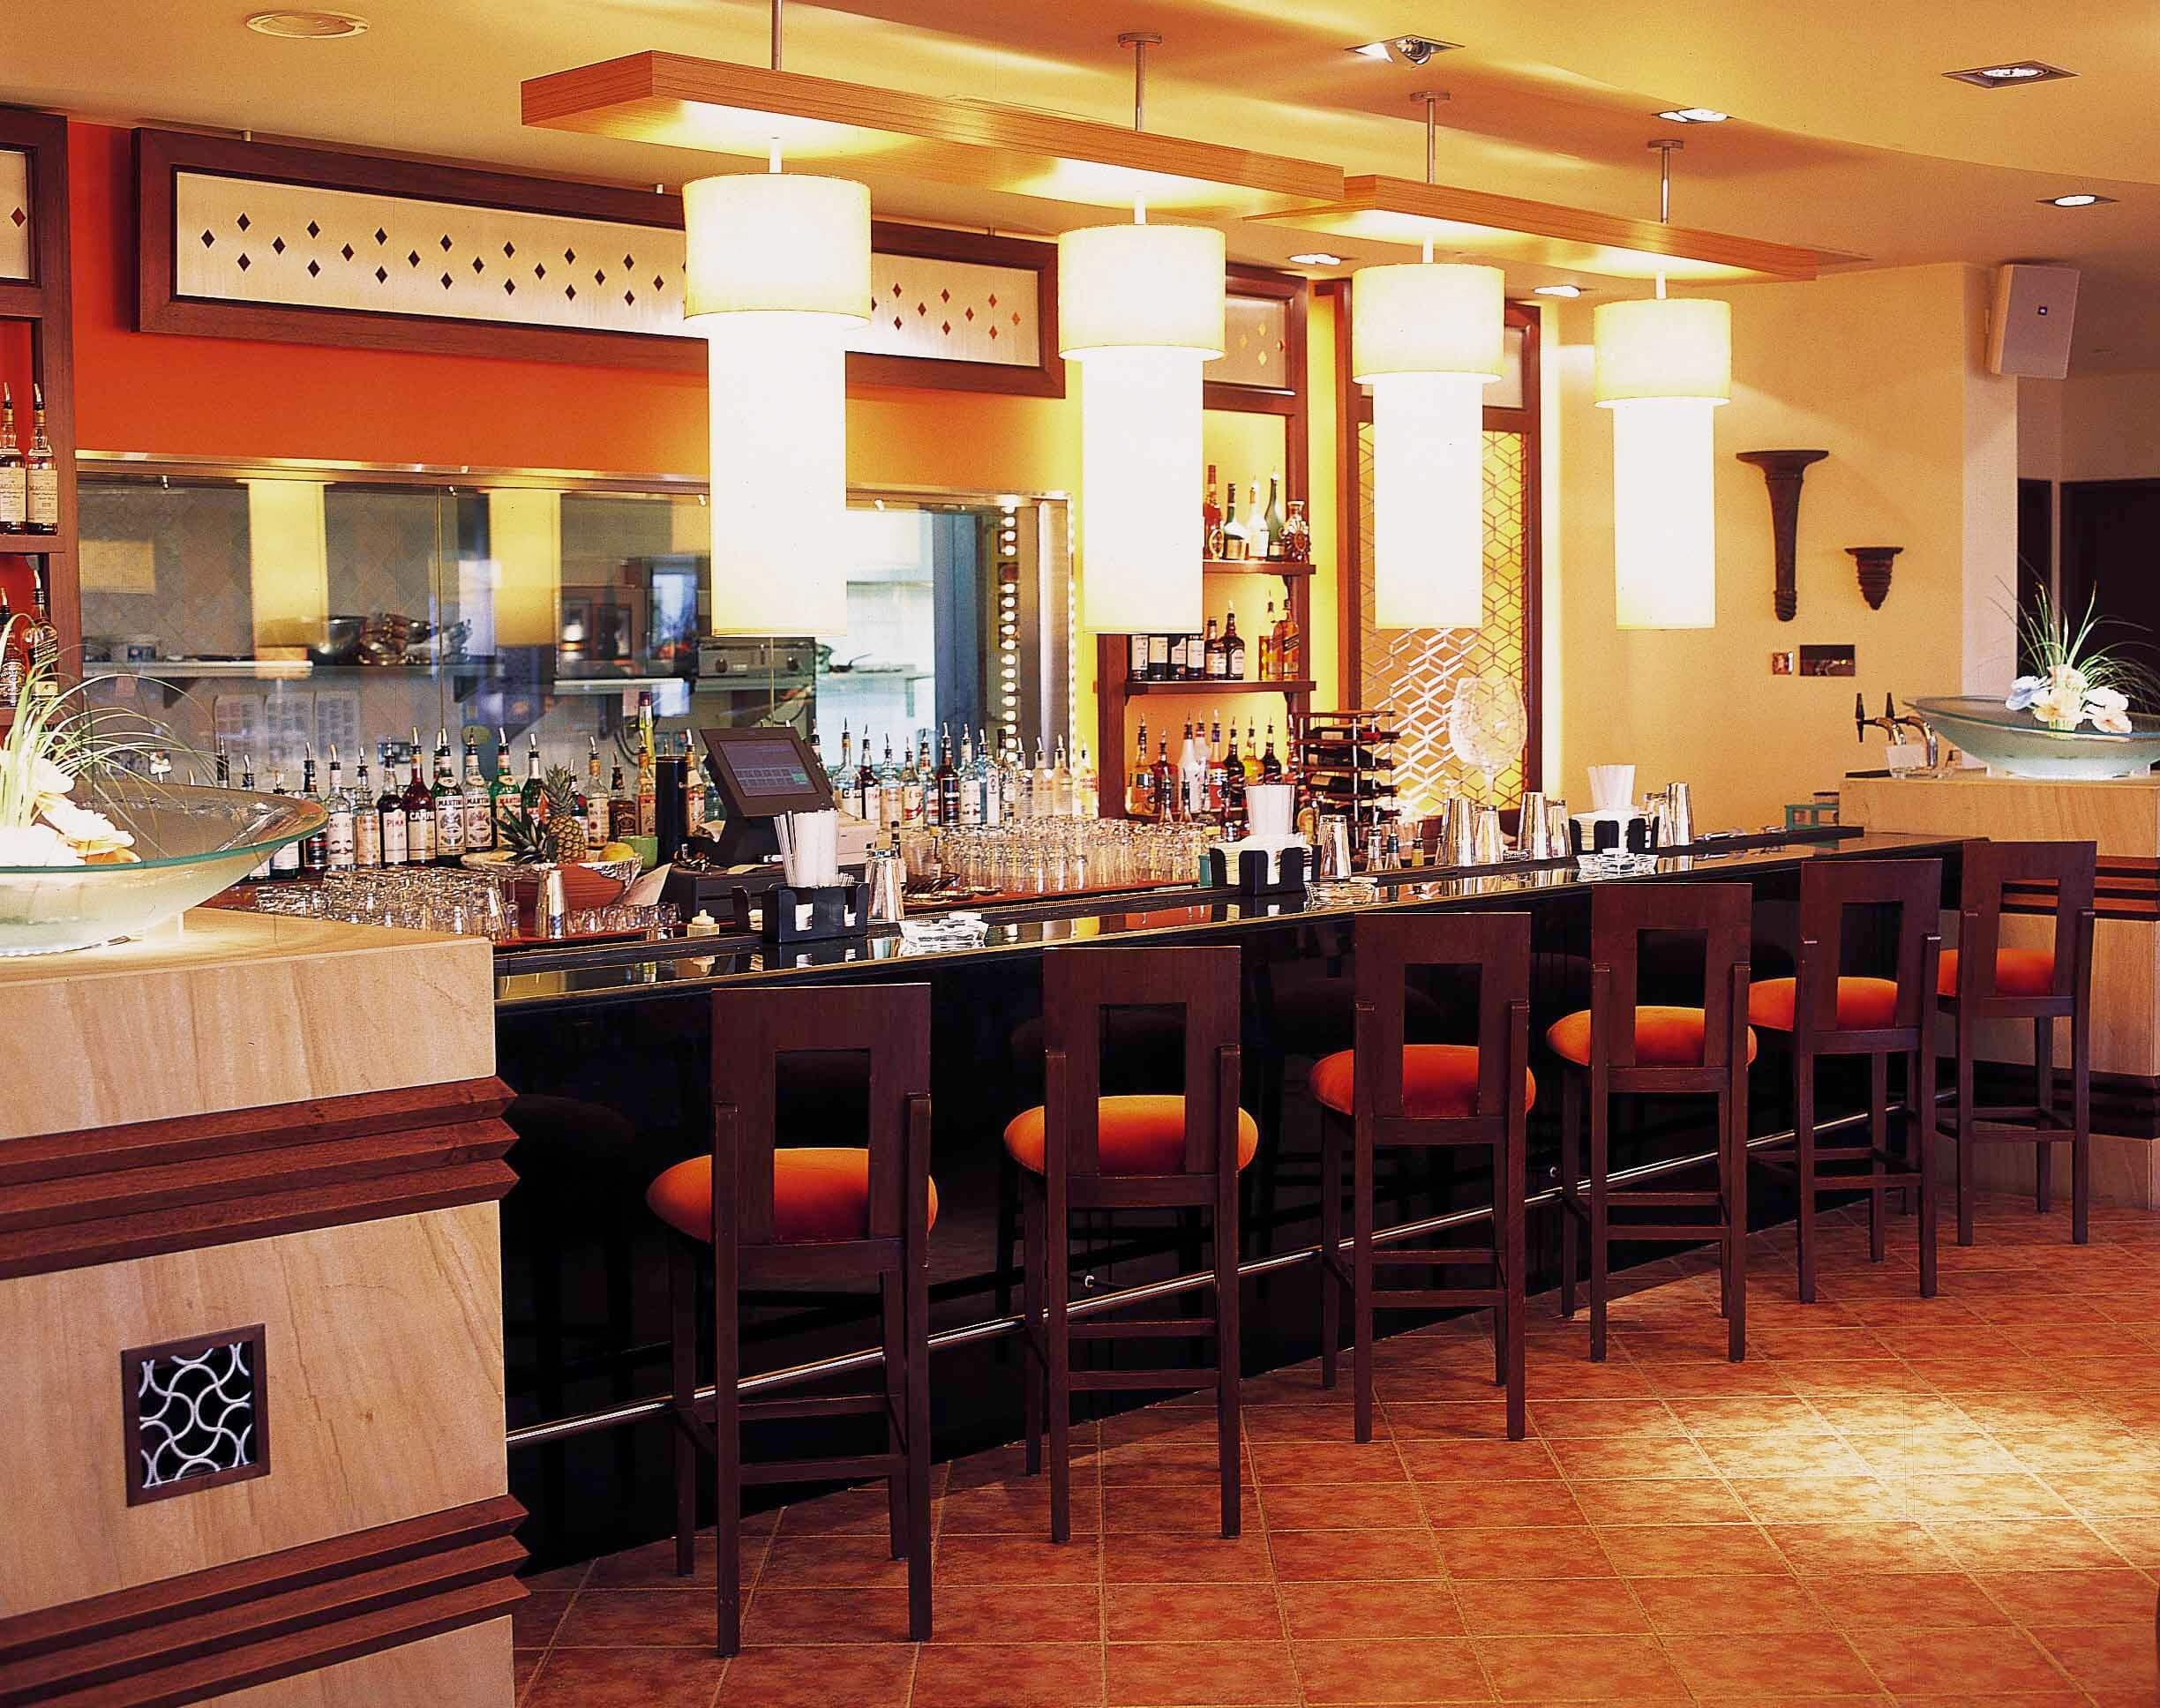 Modern Indian Bar And Restaurant Chain Commercial Interior